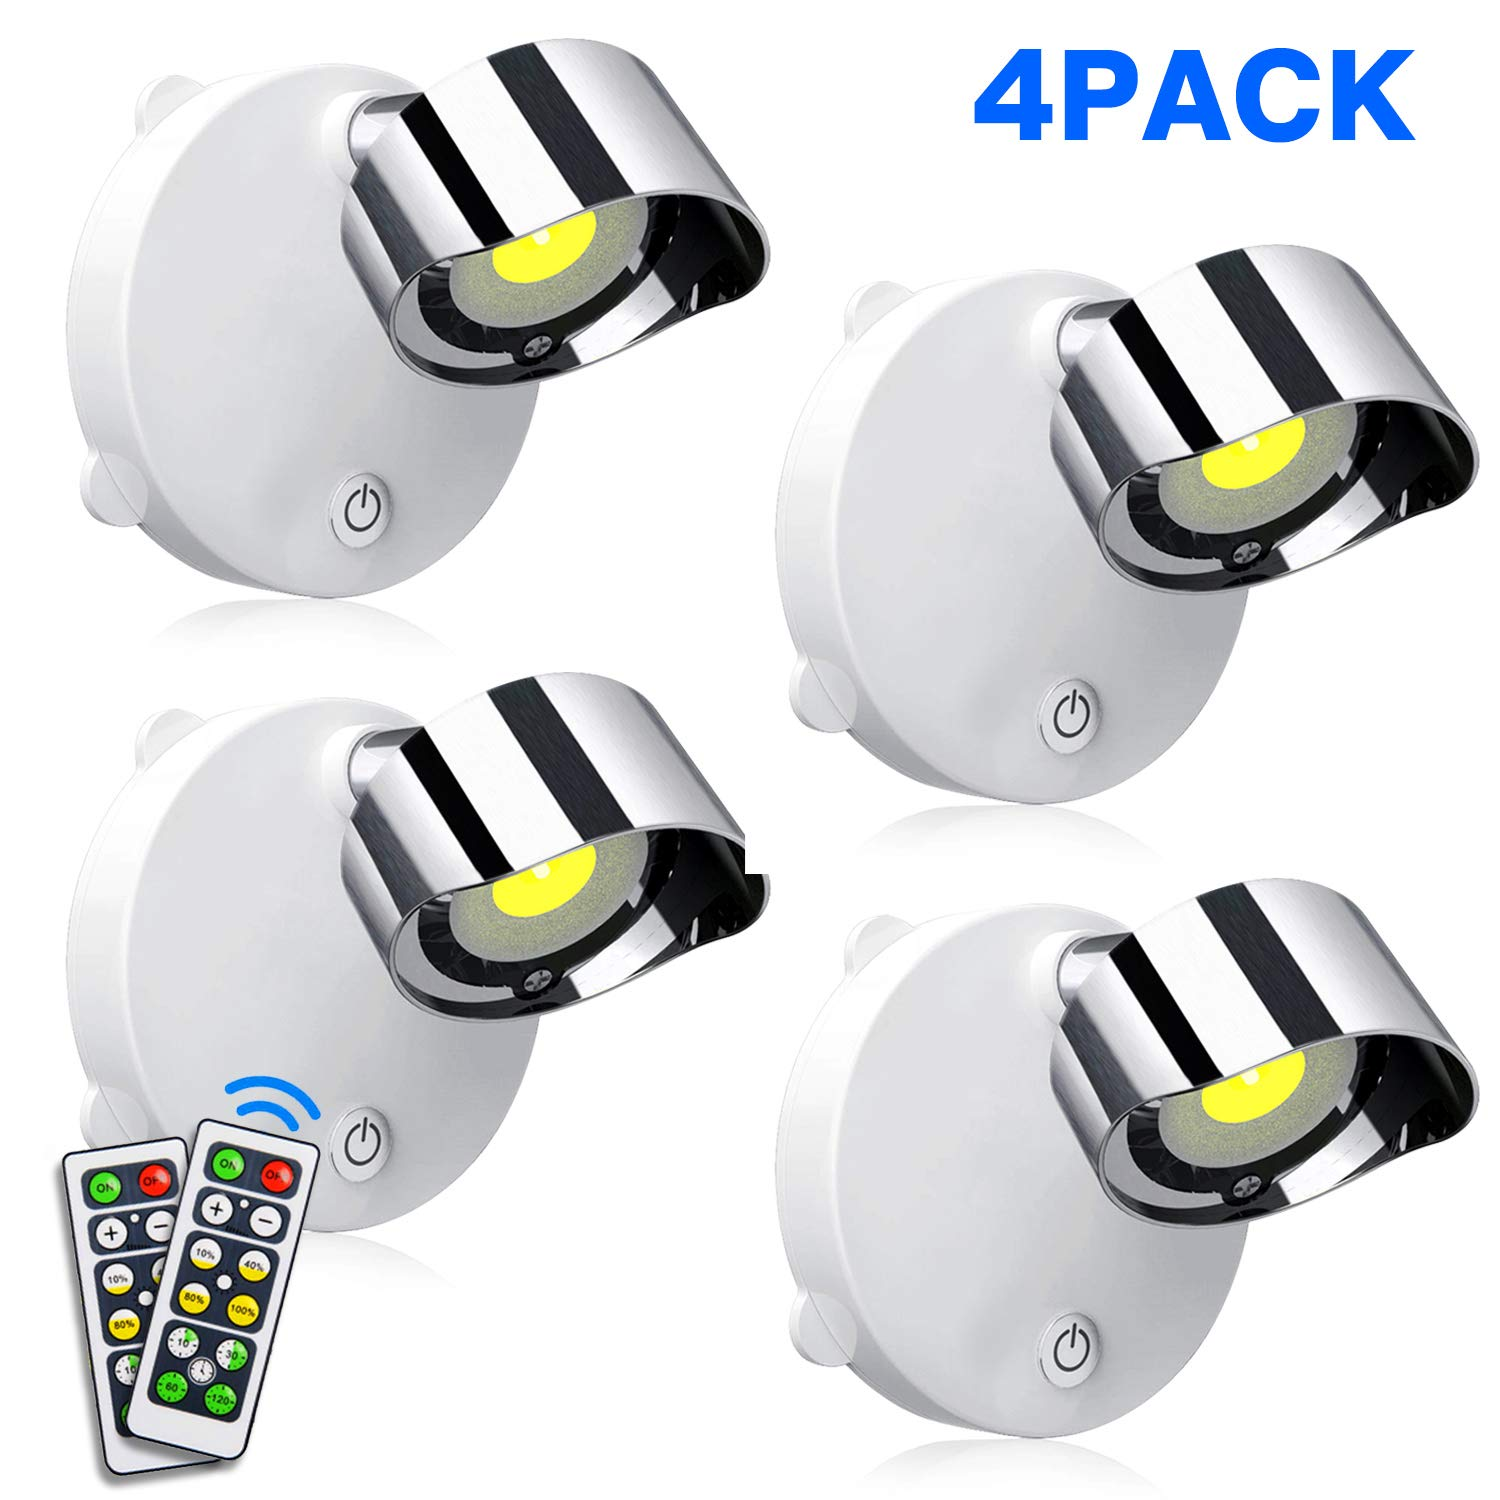 SUNVP LED Closet Lights Battery Operated Wireless Puck Lights with Remote Control, Accent Lights Dimmable Under Cabinet Lighting with Rotatable Light Head Stick on (White 4000K, 4 Pack)